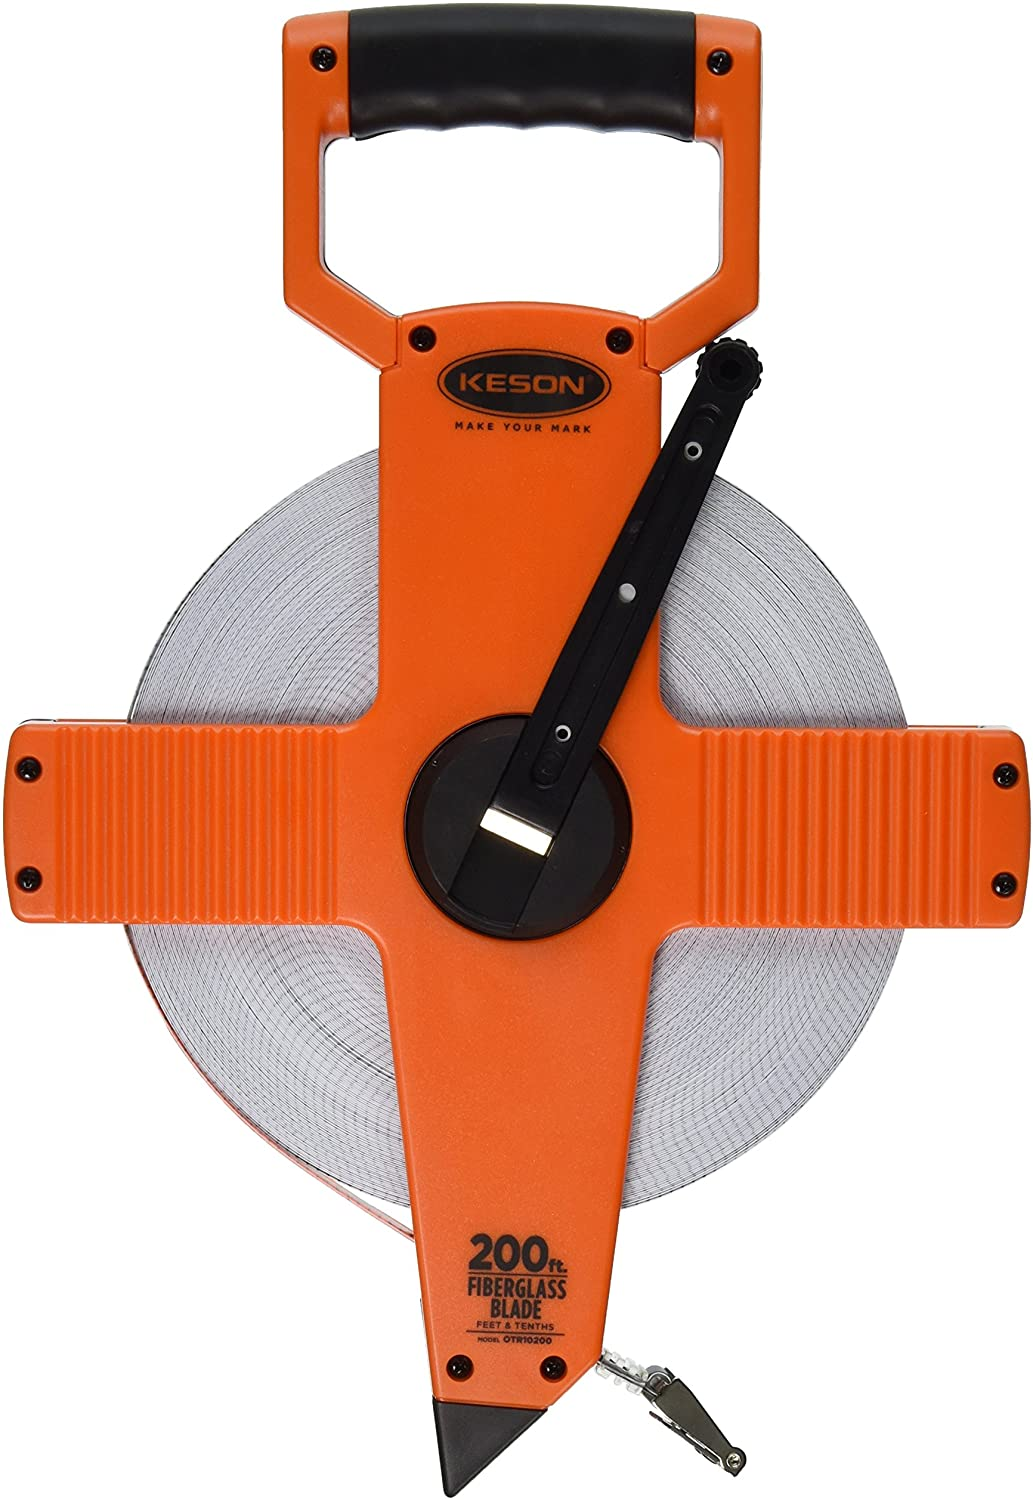 Keson OTR10200 Open Reel Fiberglass Tape Measure Reel (Graduations: 1/10, 1/100), 200-Foot